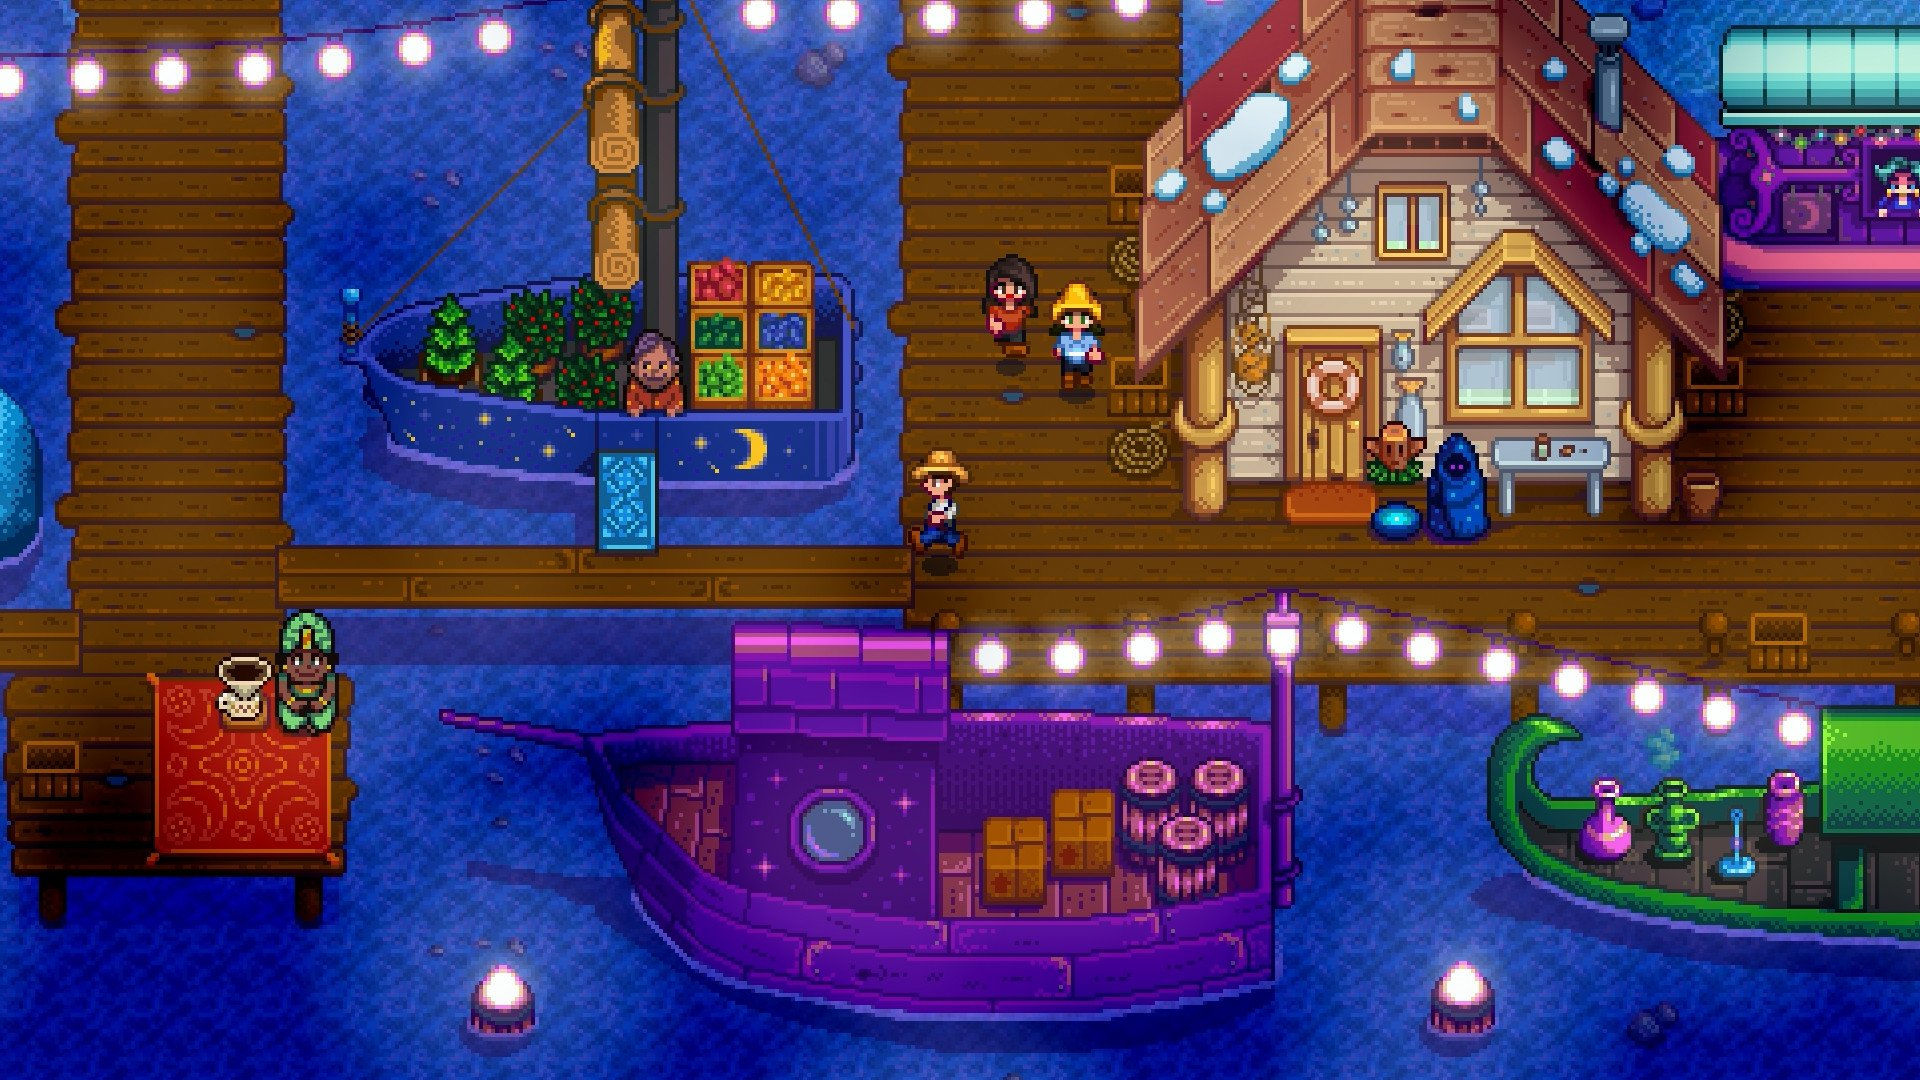 It may all look very cute and cosy, but underneath the surface of Stardew Valley lies a seething contempt for mankind that is just waiting to burst out. You mark my words, one day, your pretty little towns and fishing villages will change. CHANGE. You'll load up the game, and things will have turned, the delightful pixel graphics will have become the crude angular polygons of the early 90s, and those happy-go-lucky folks will reveal their true selves.